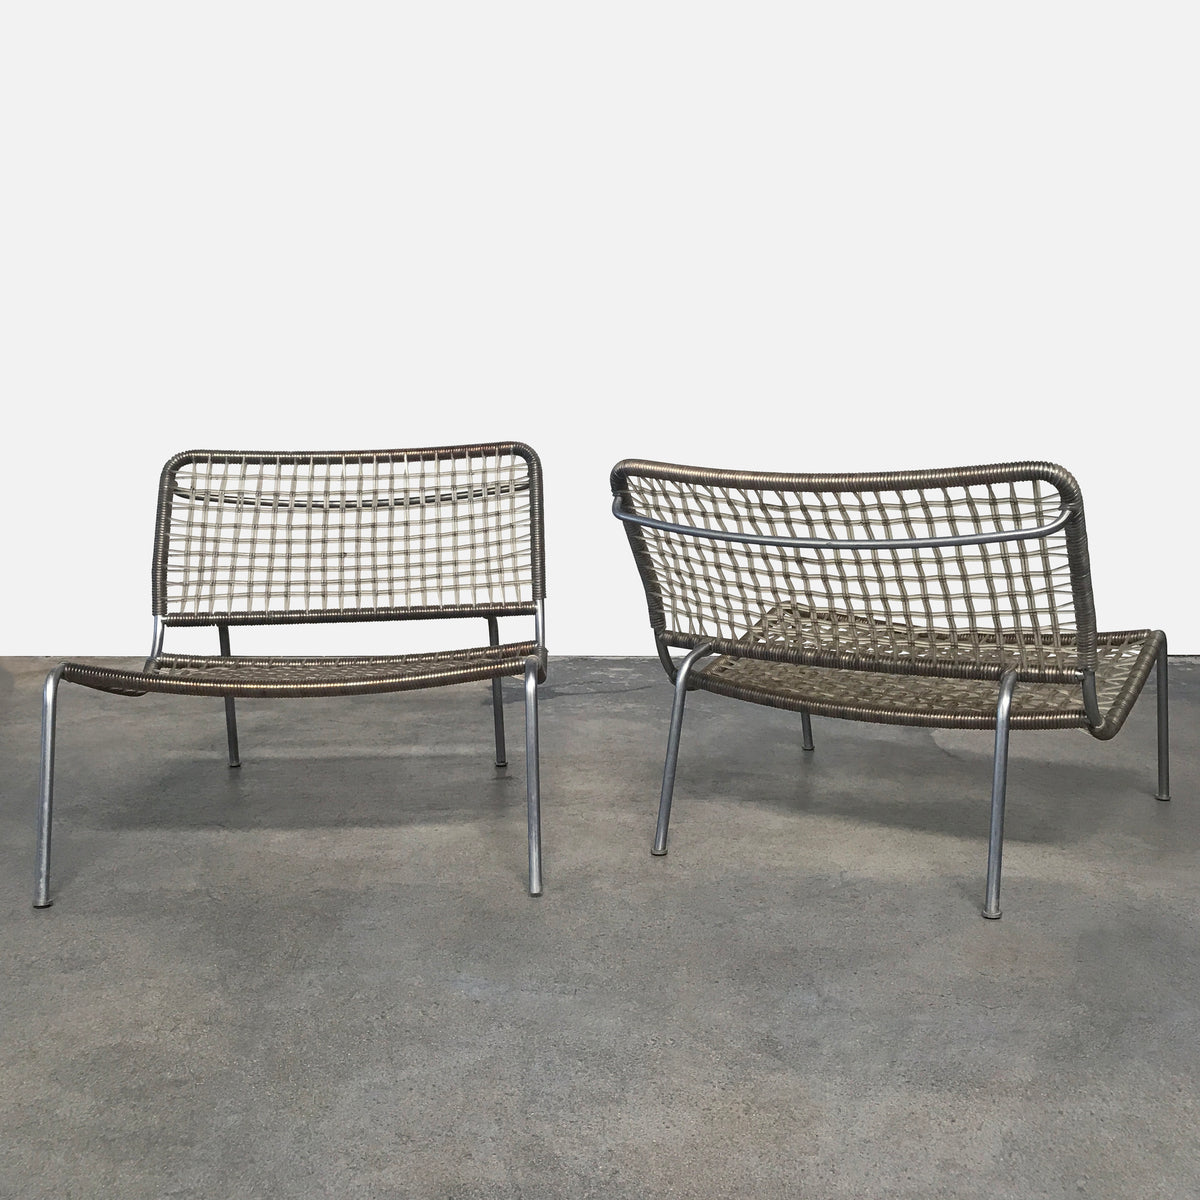 Living Divani Frog Outdoor Lounge Chair | LA | Consignment